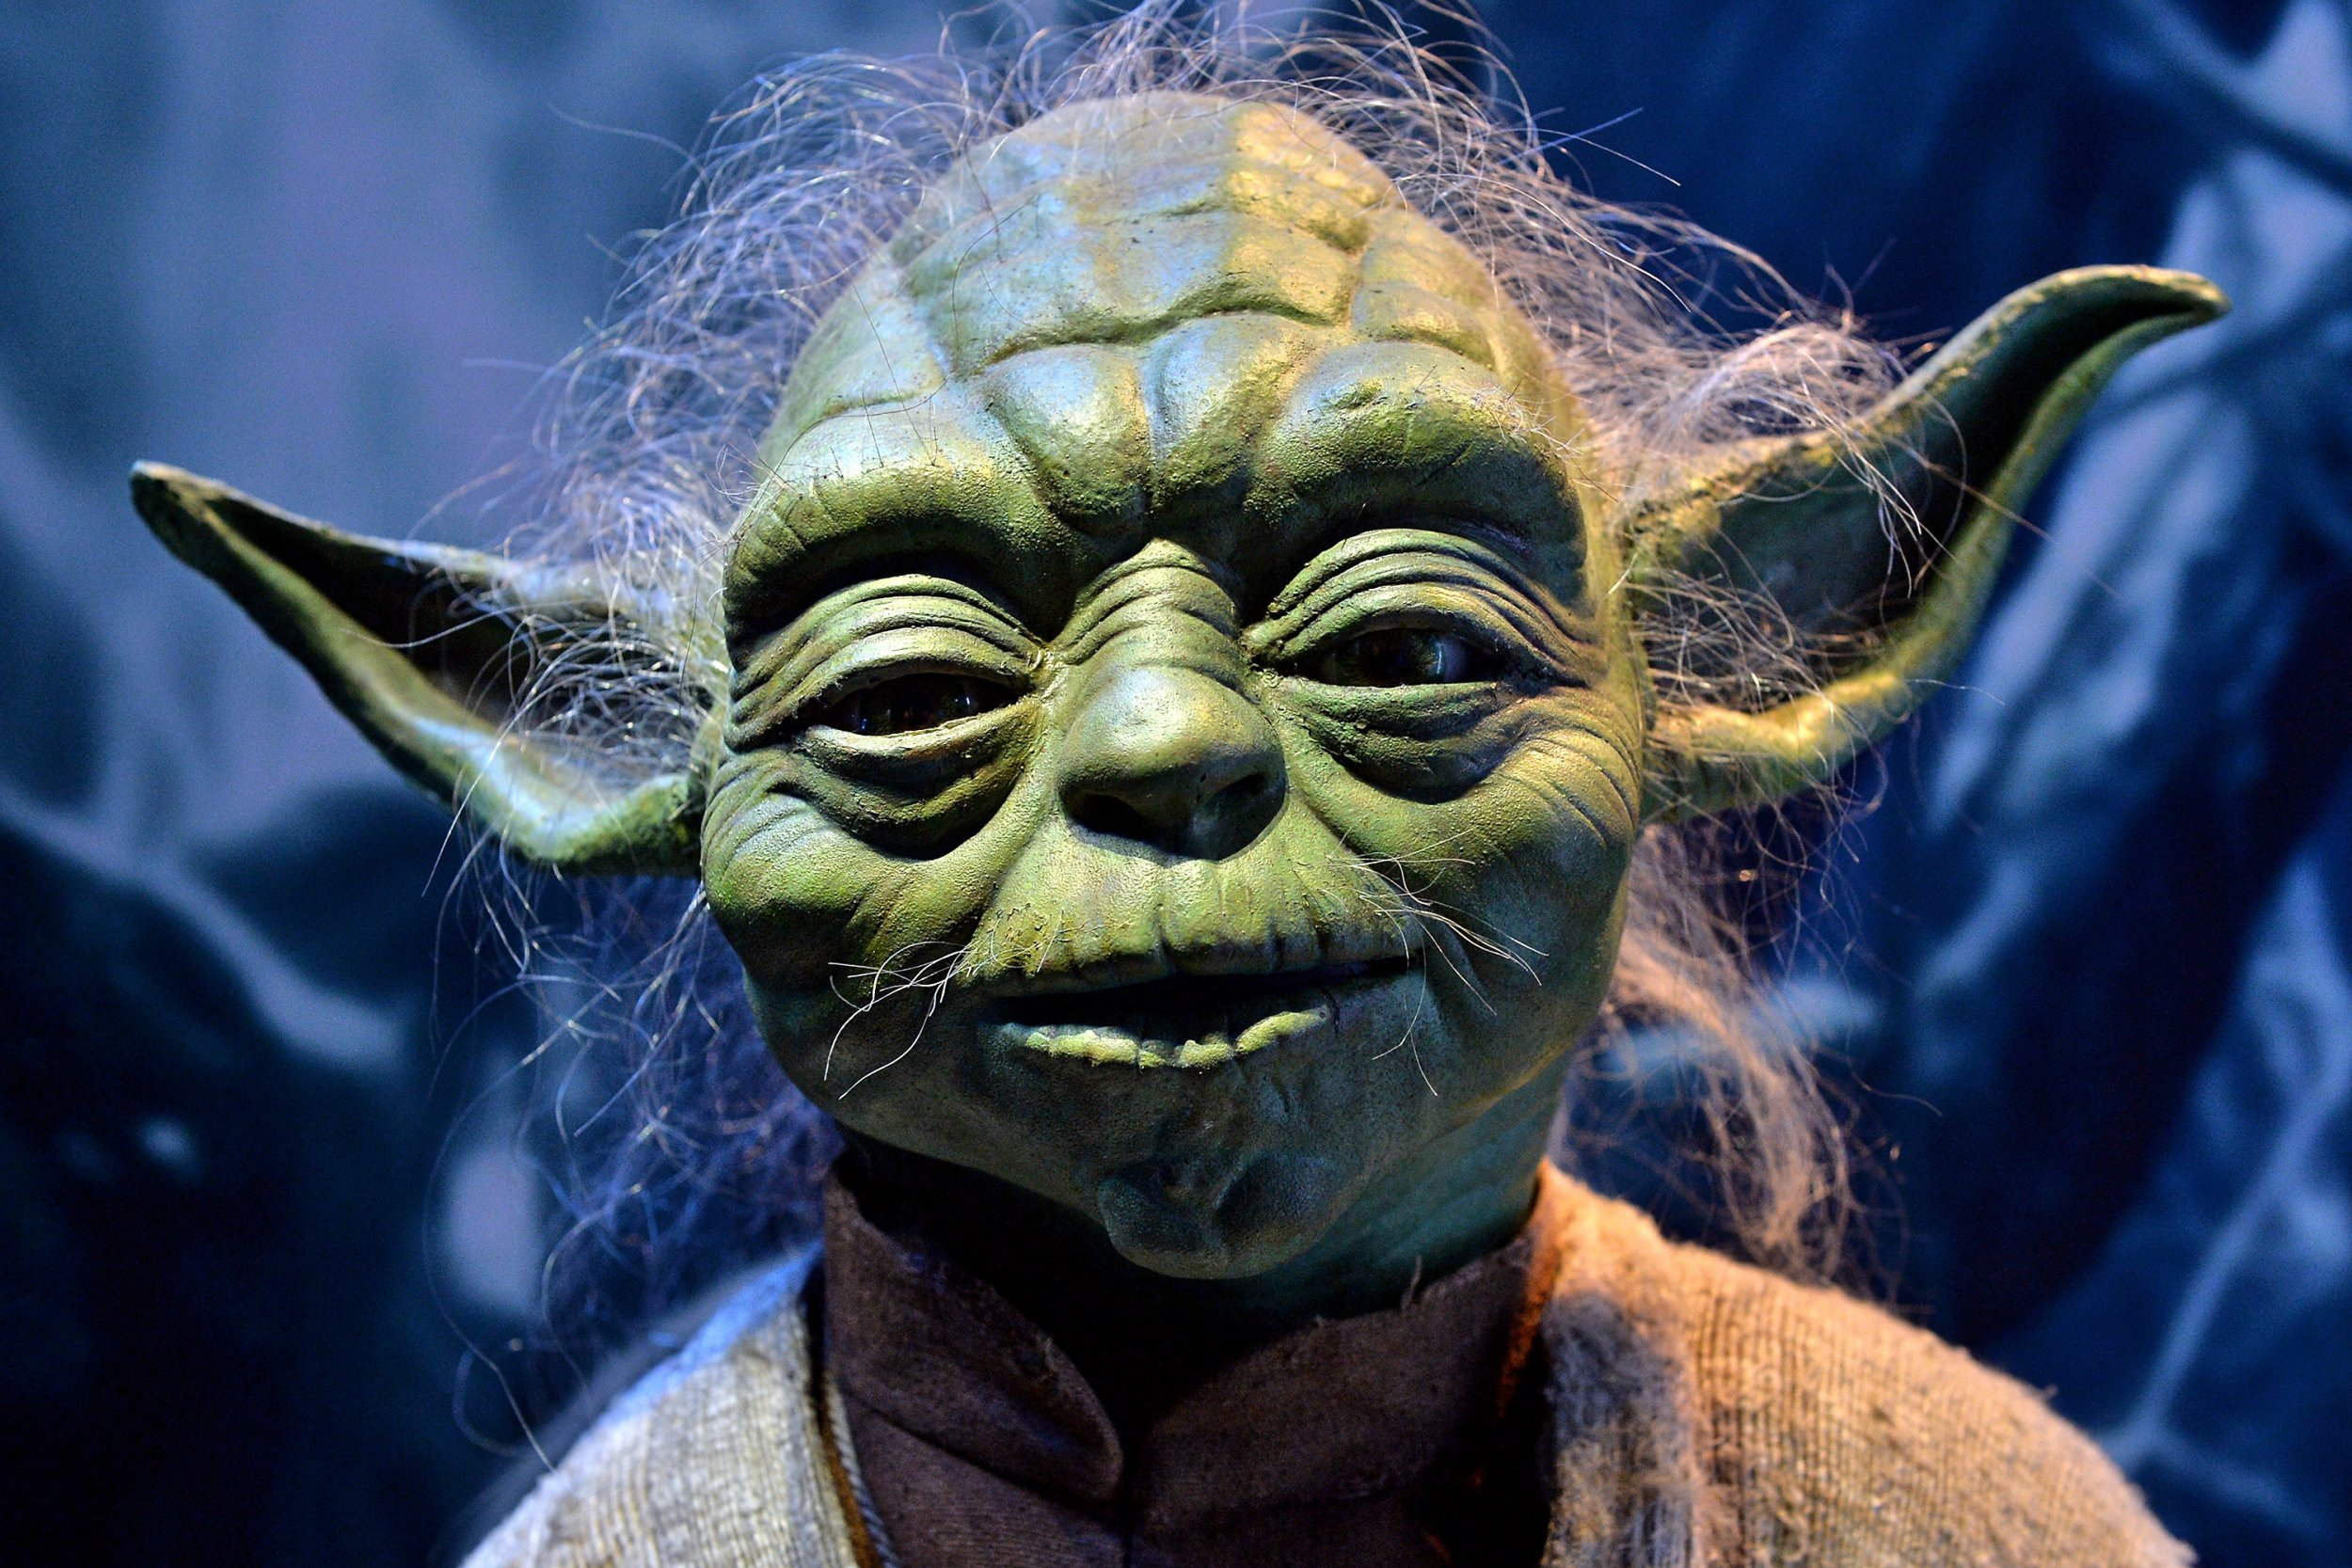 The Force may already be with you, as physicist Brian Greene explains